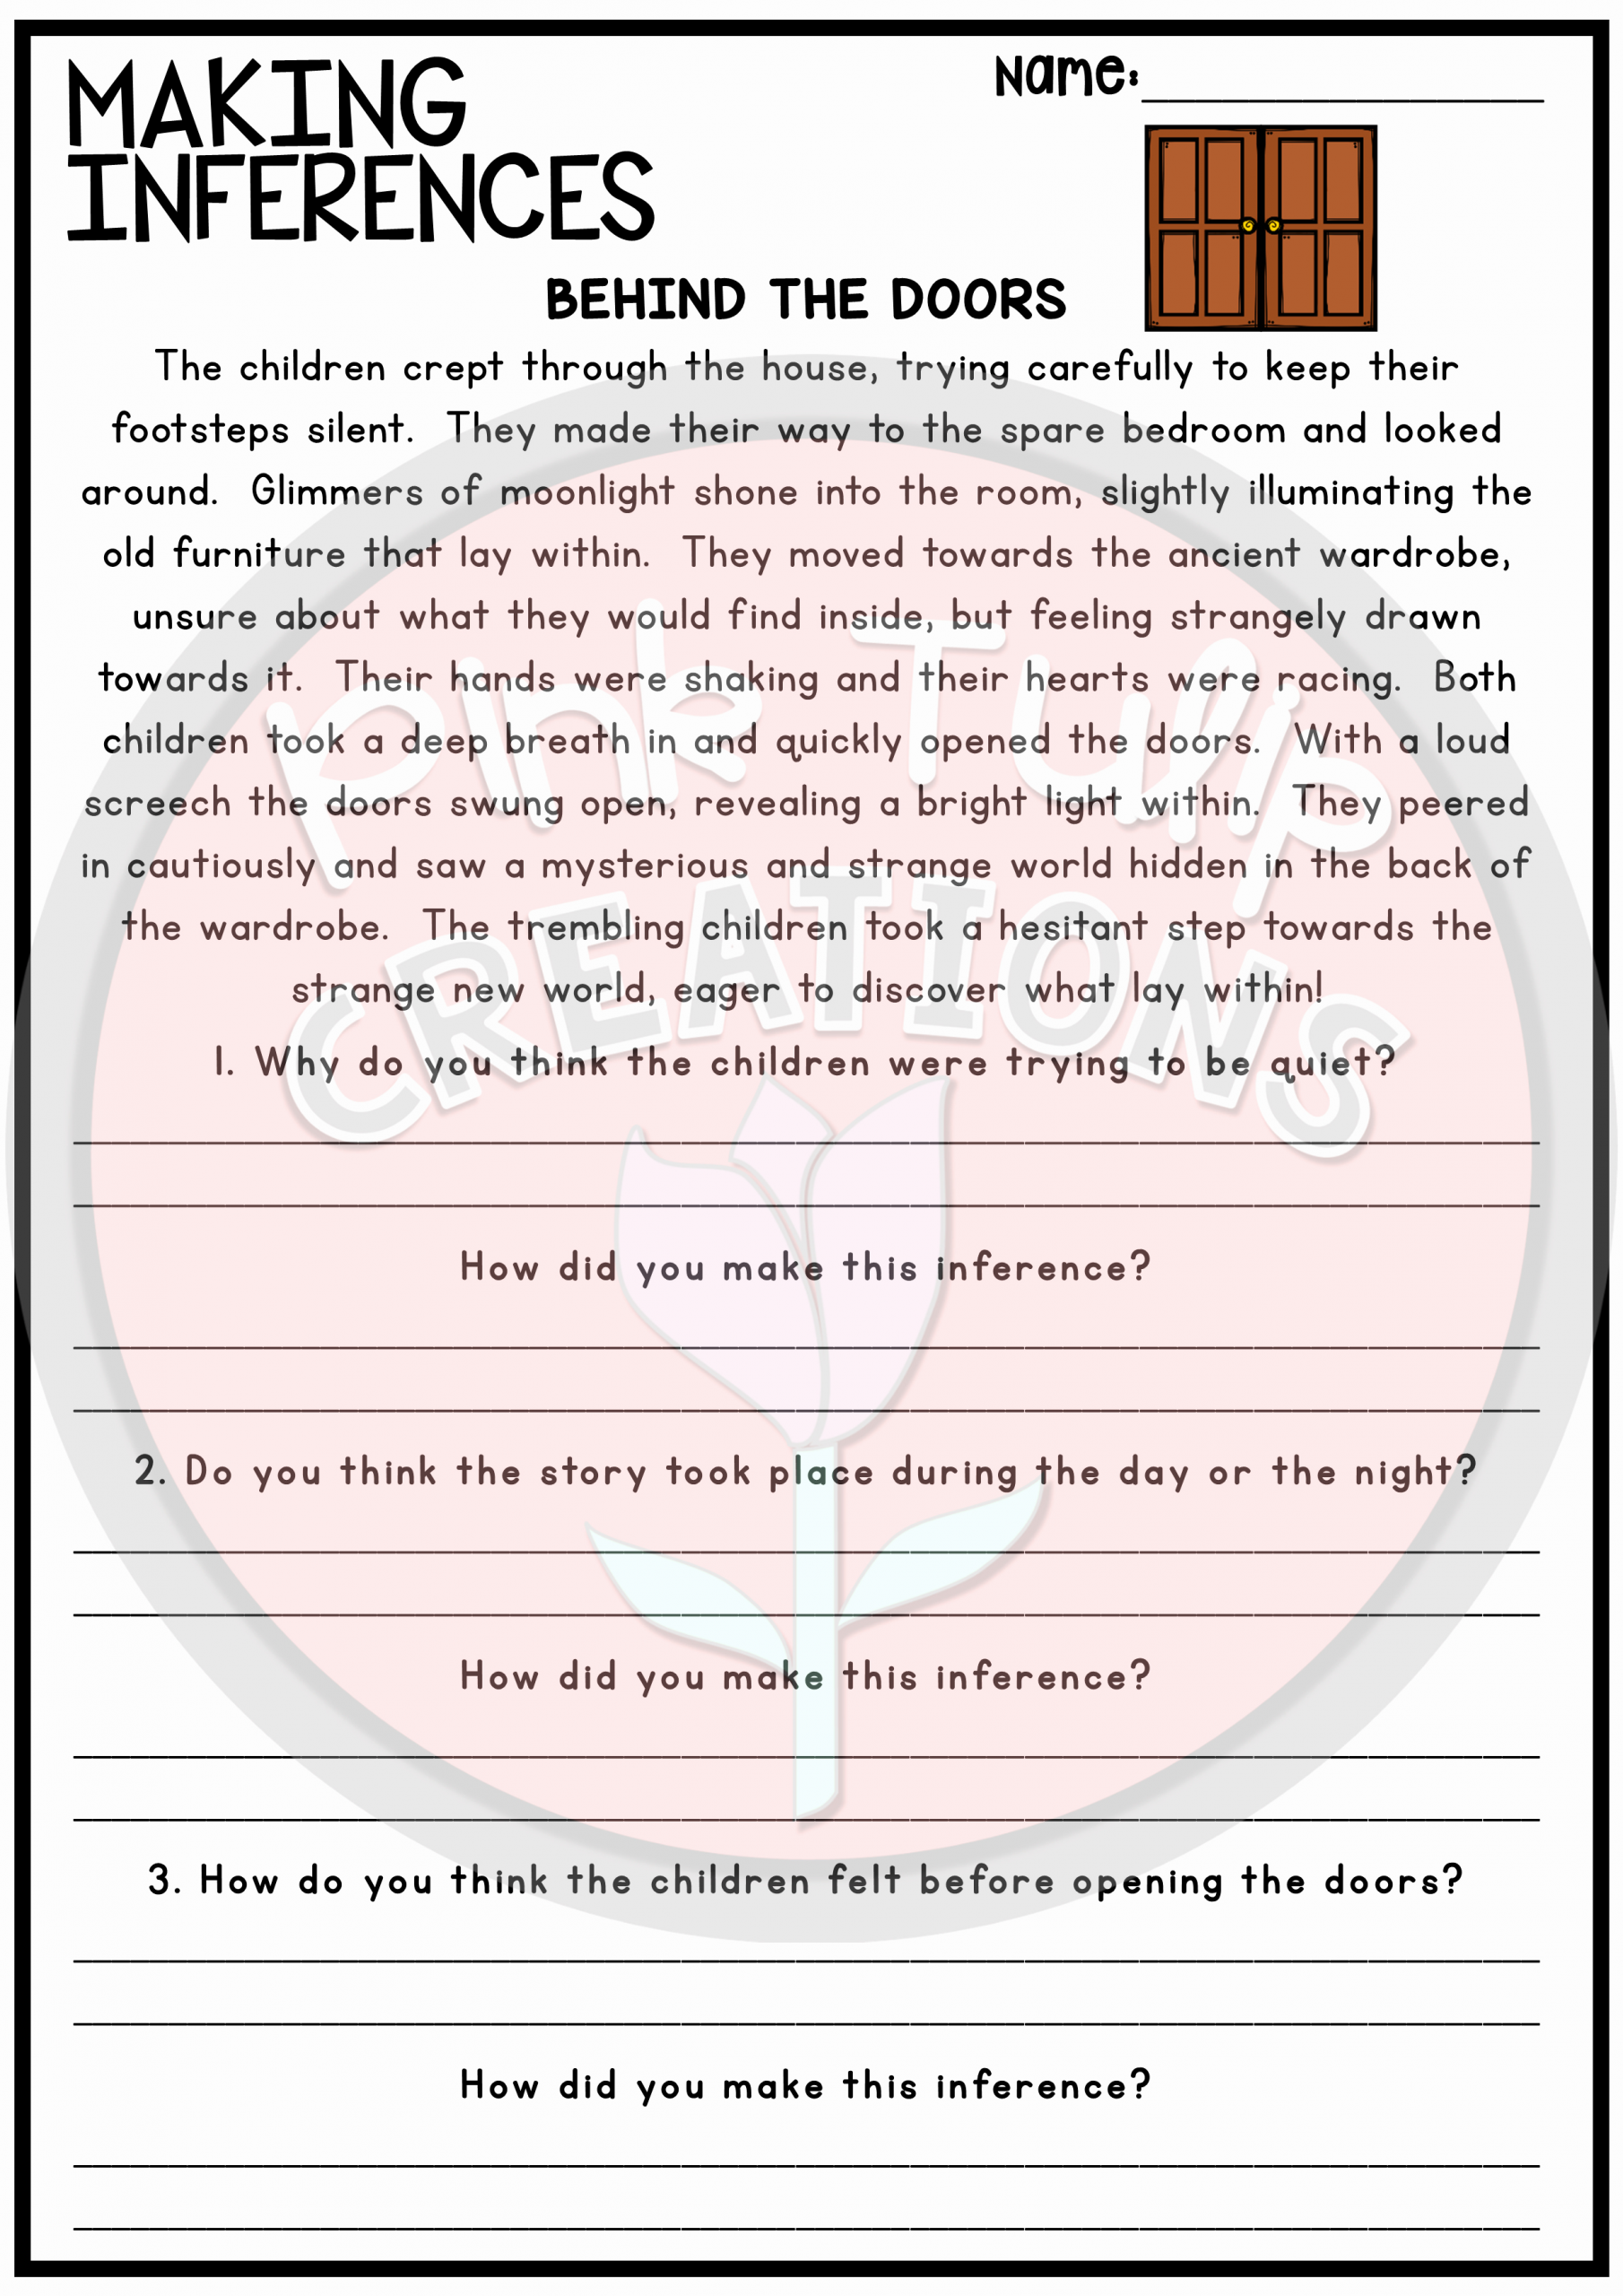 Making Inferences Worksheets 4th Grade New Making Inferences and Drawing Conclusions Reading